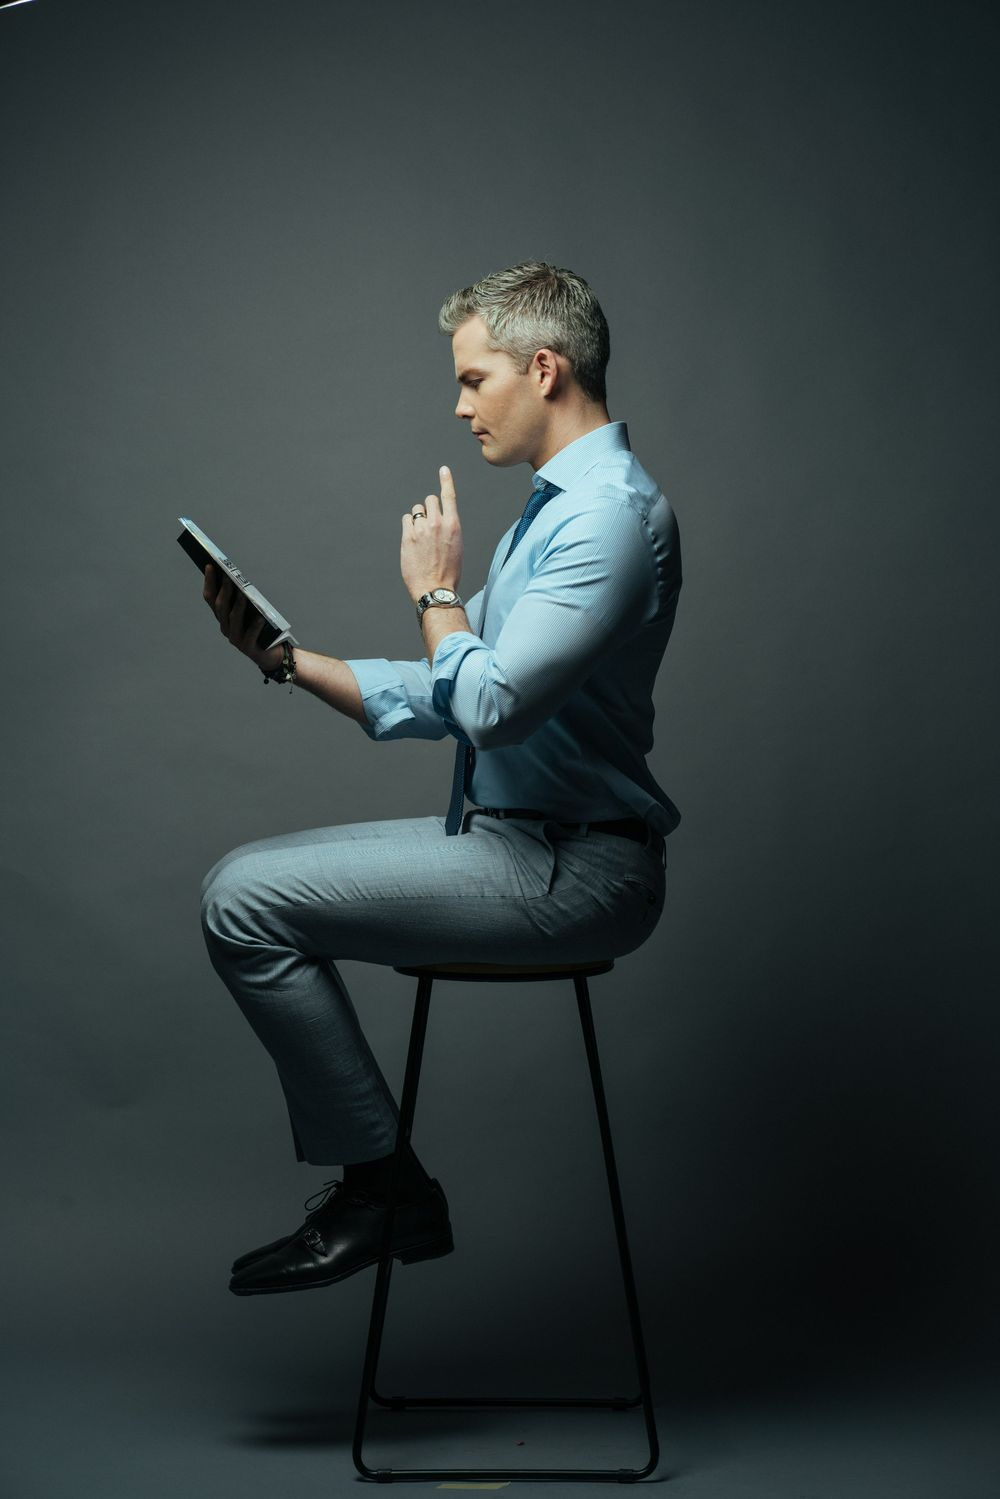 Ryan Serhant Million dollar listing shot by Bill Chen photographer